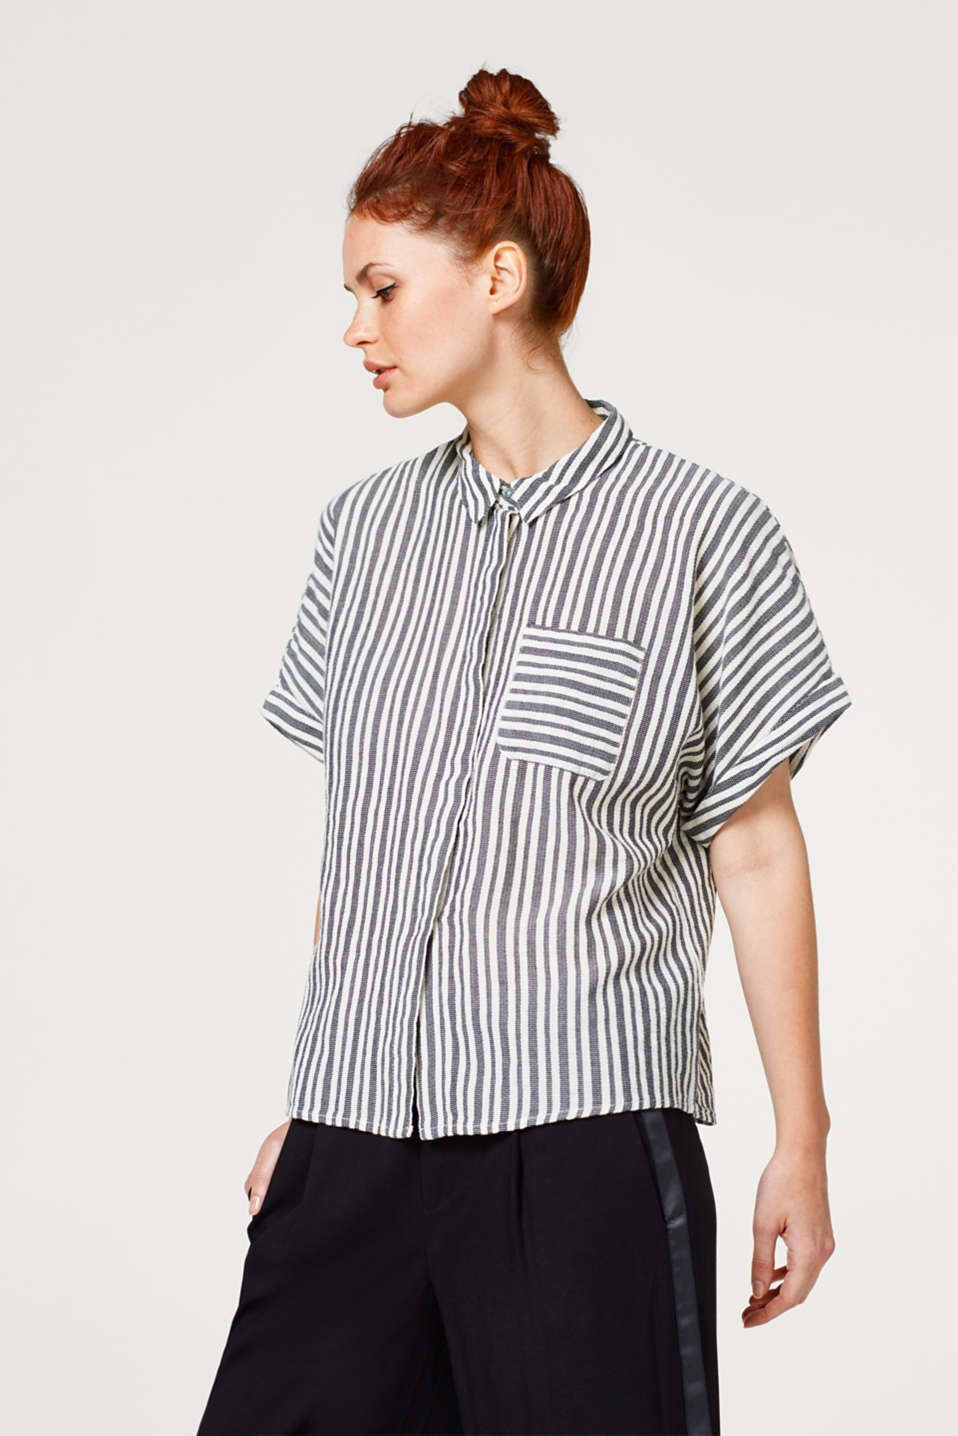 Esprit - Blouse in a striped look, in 100% cotton